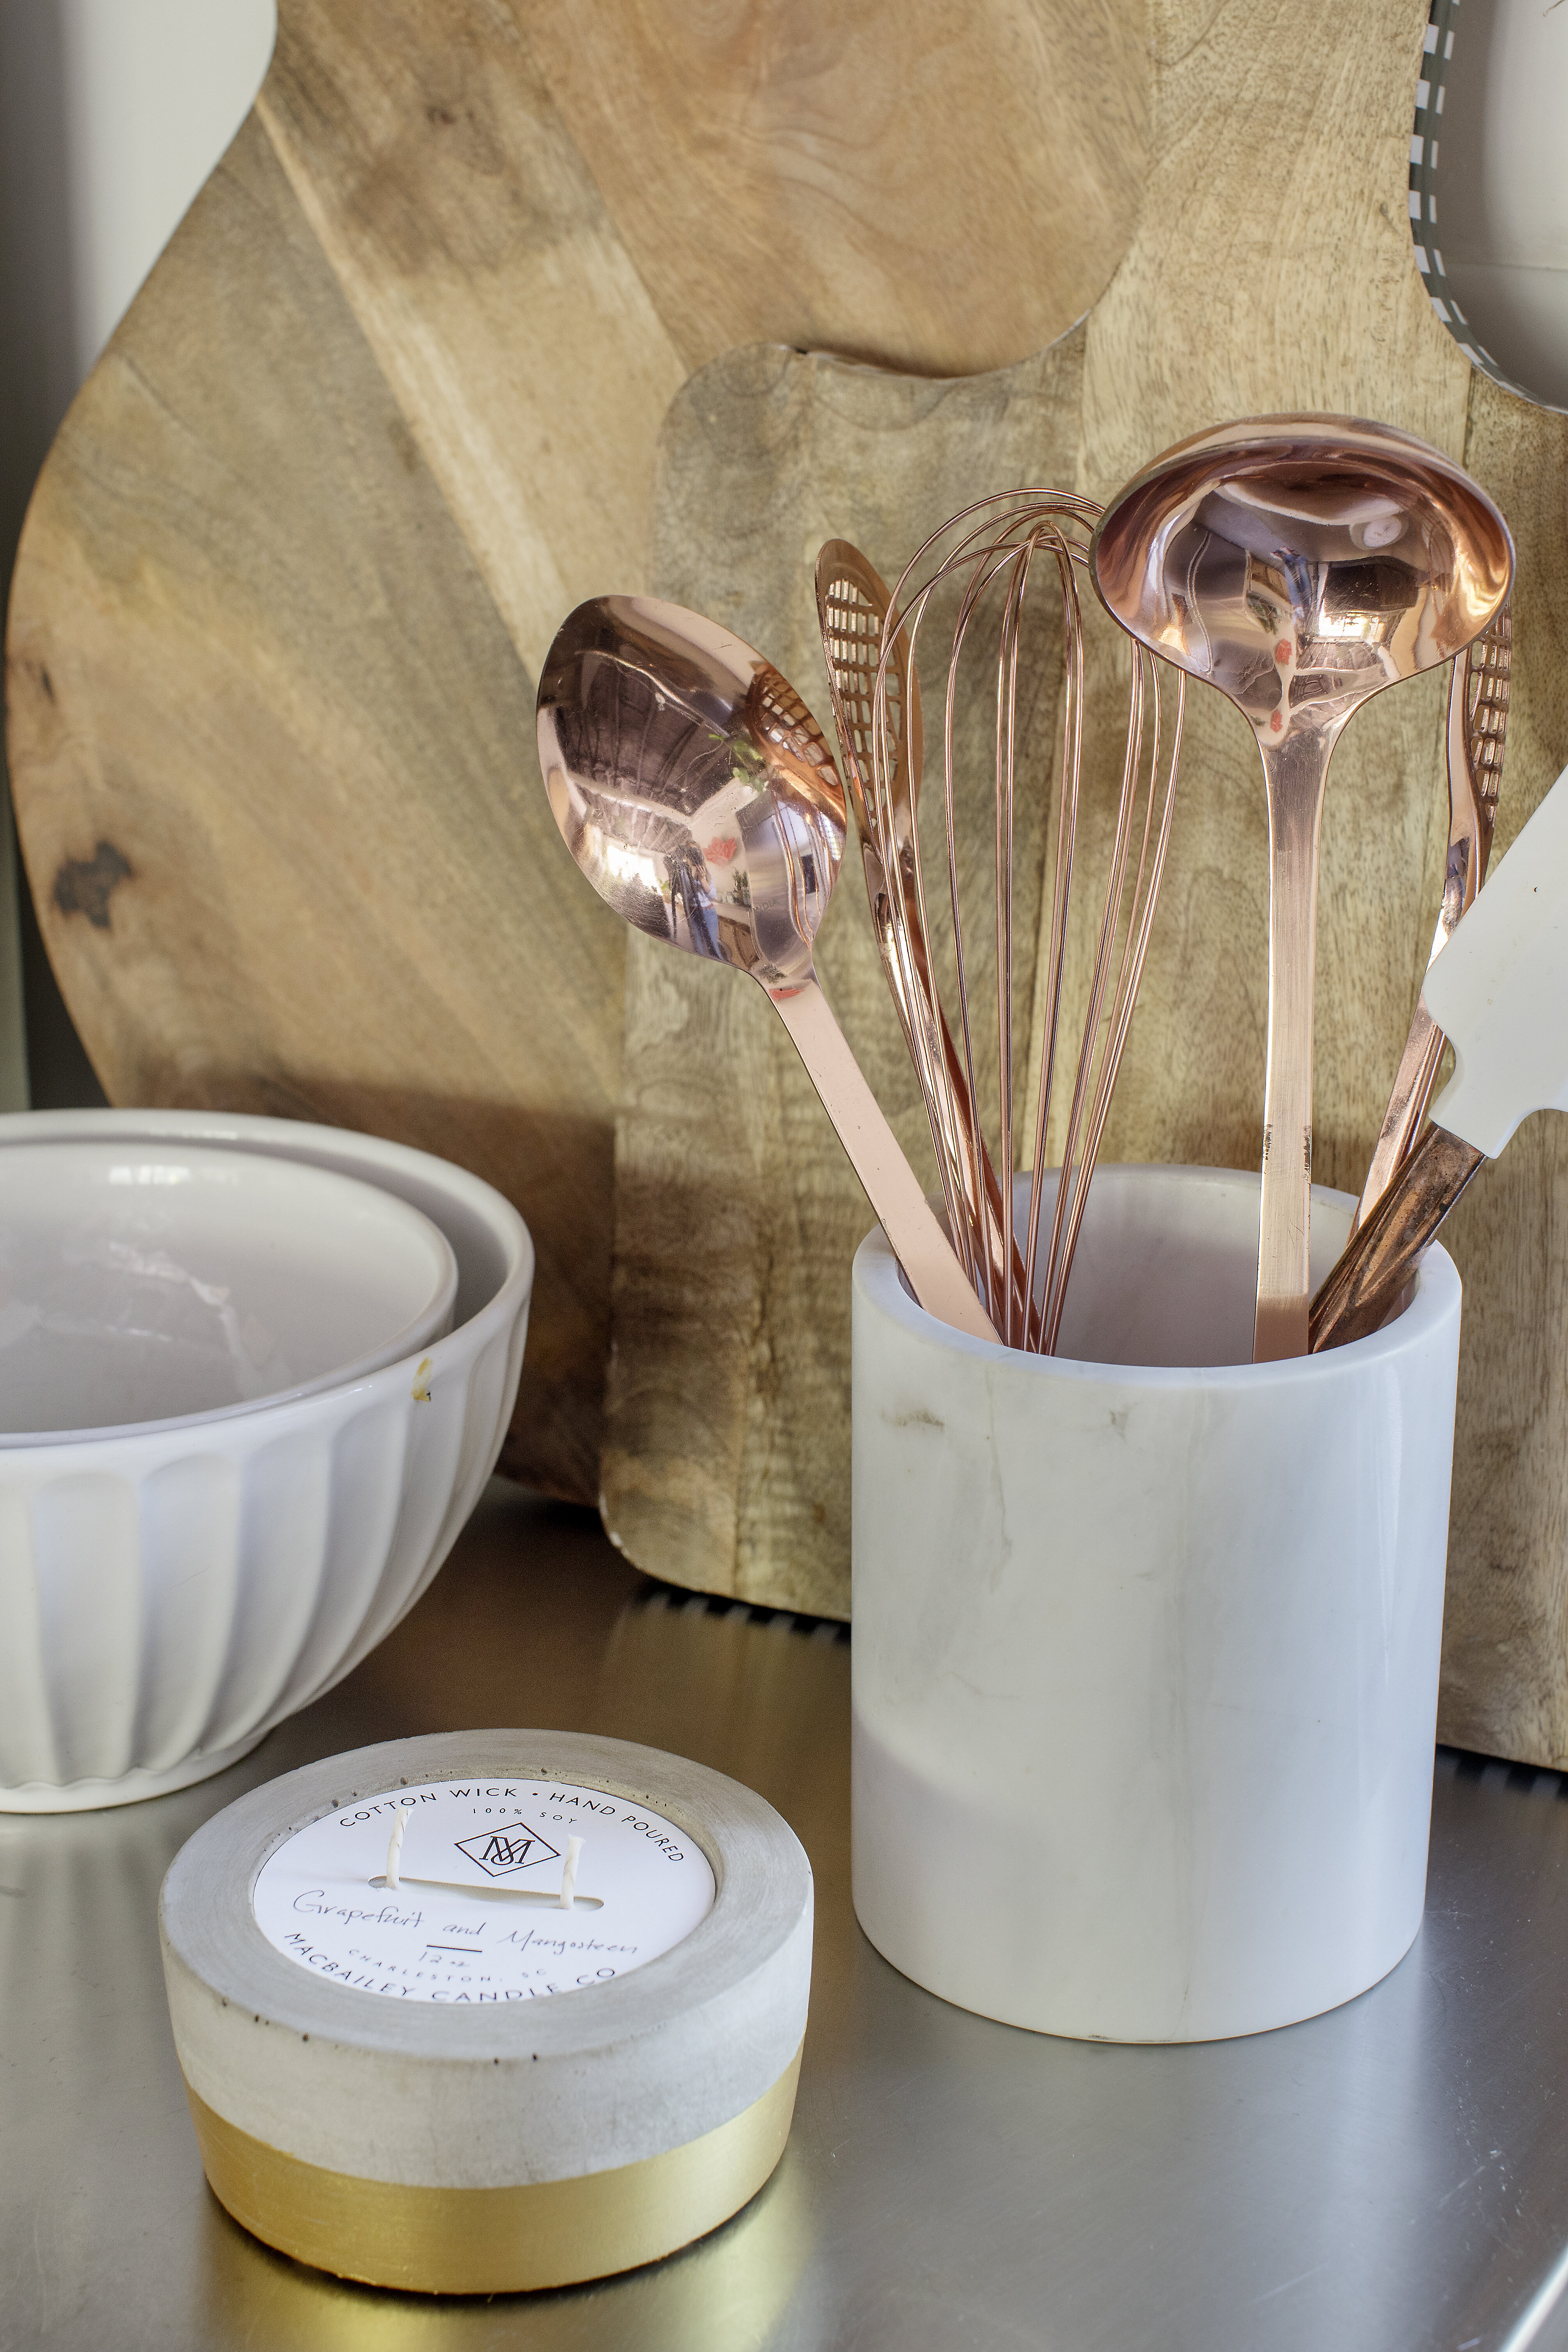 Soy Macbailey Candle Co Candles You Ll Love In 2021 Wayfair